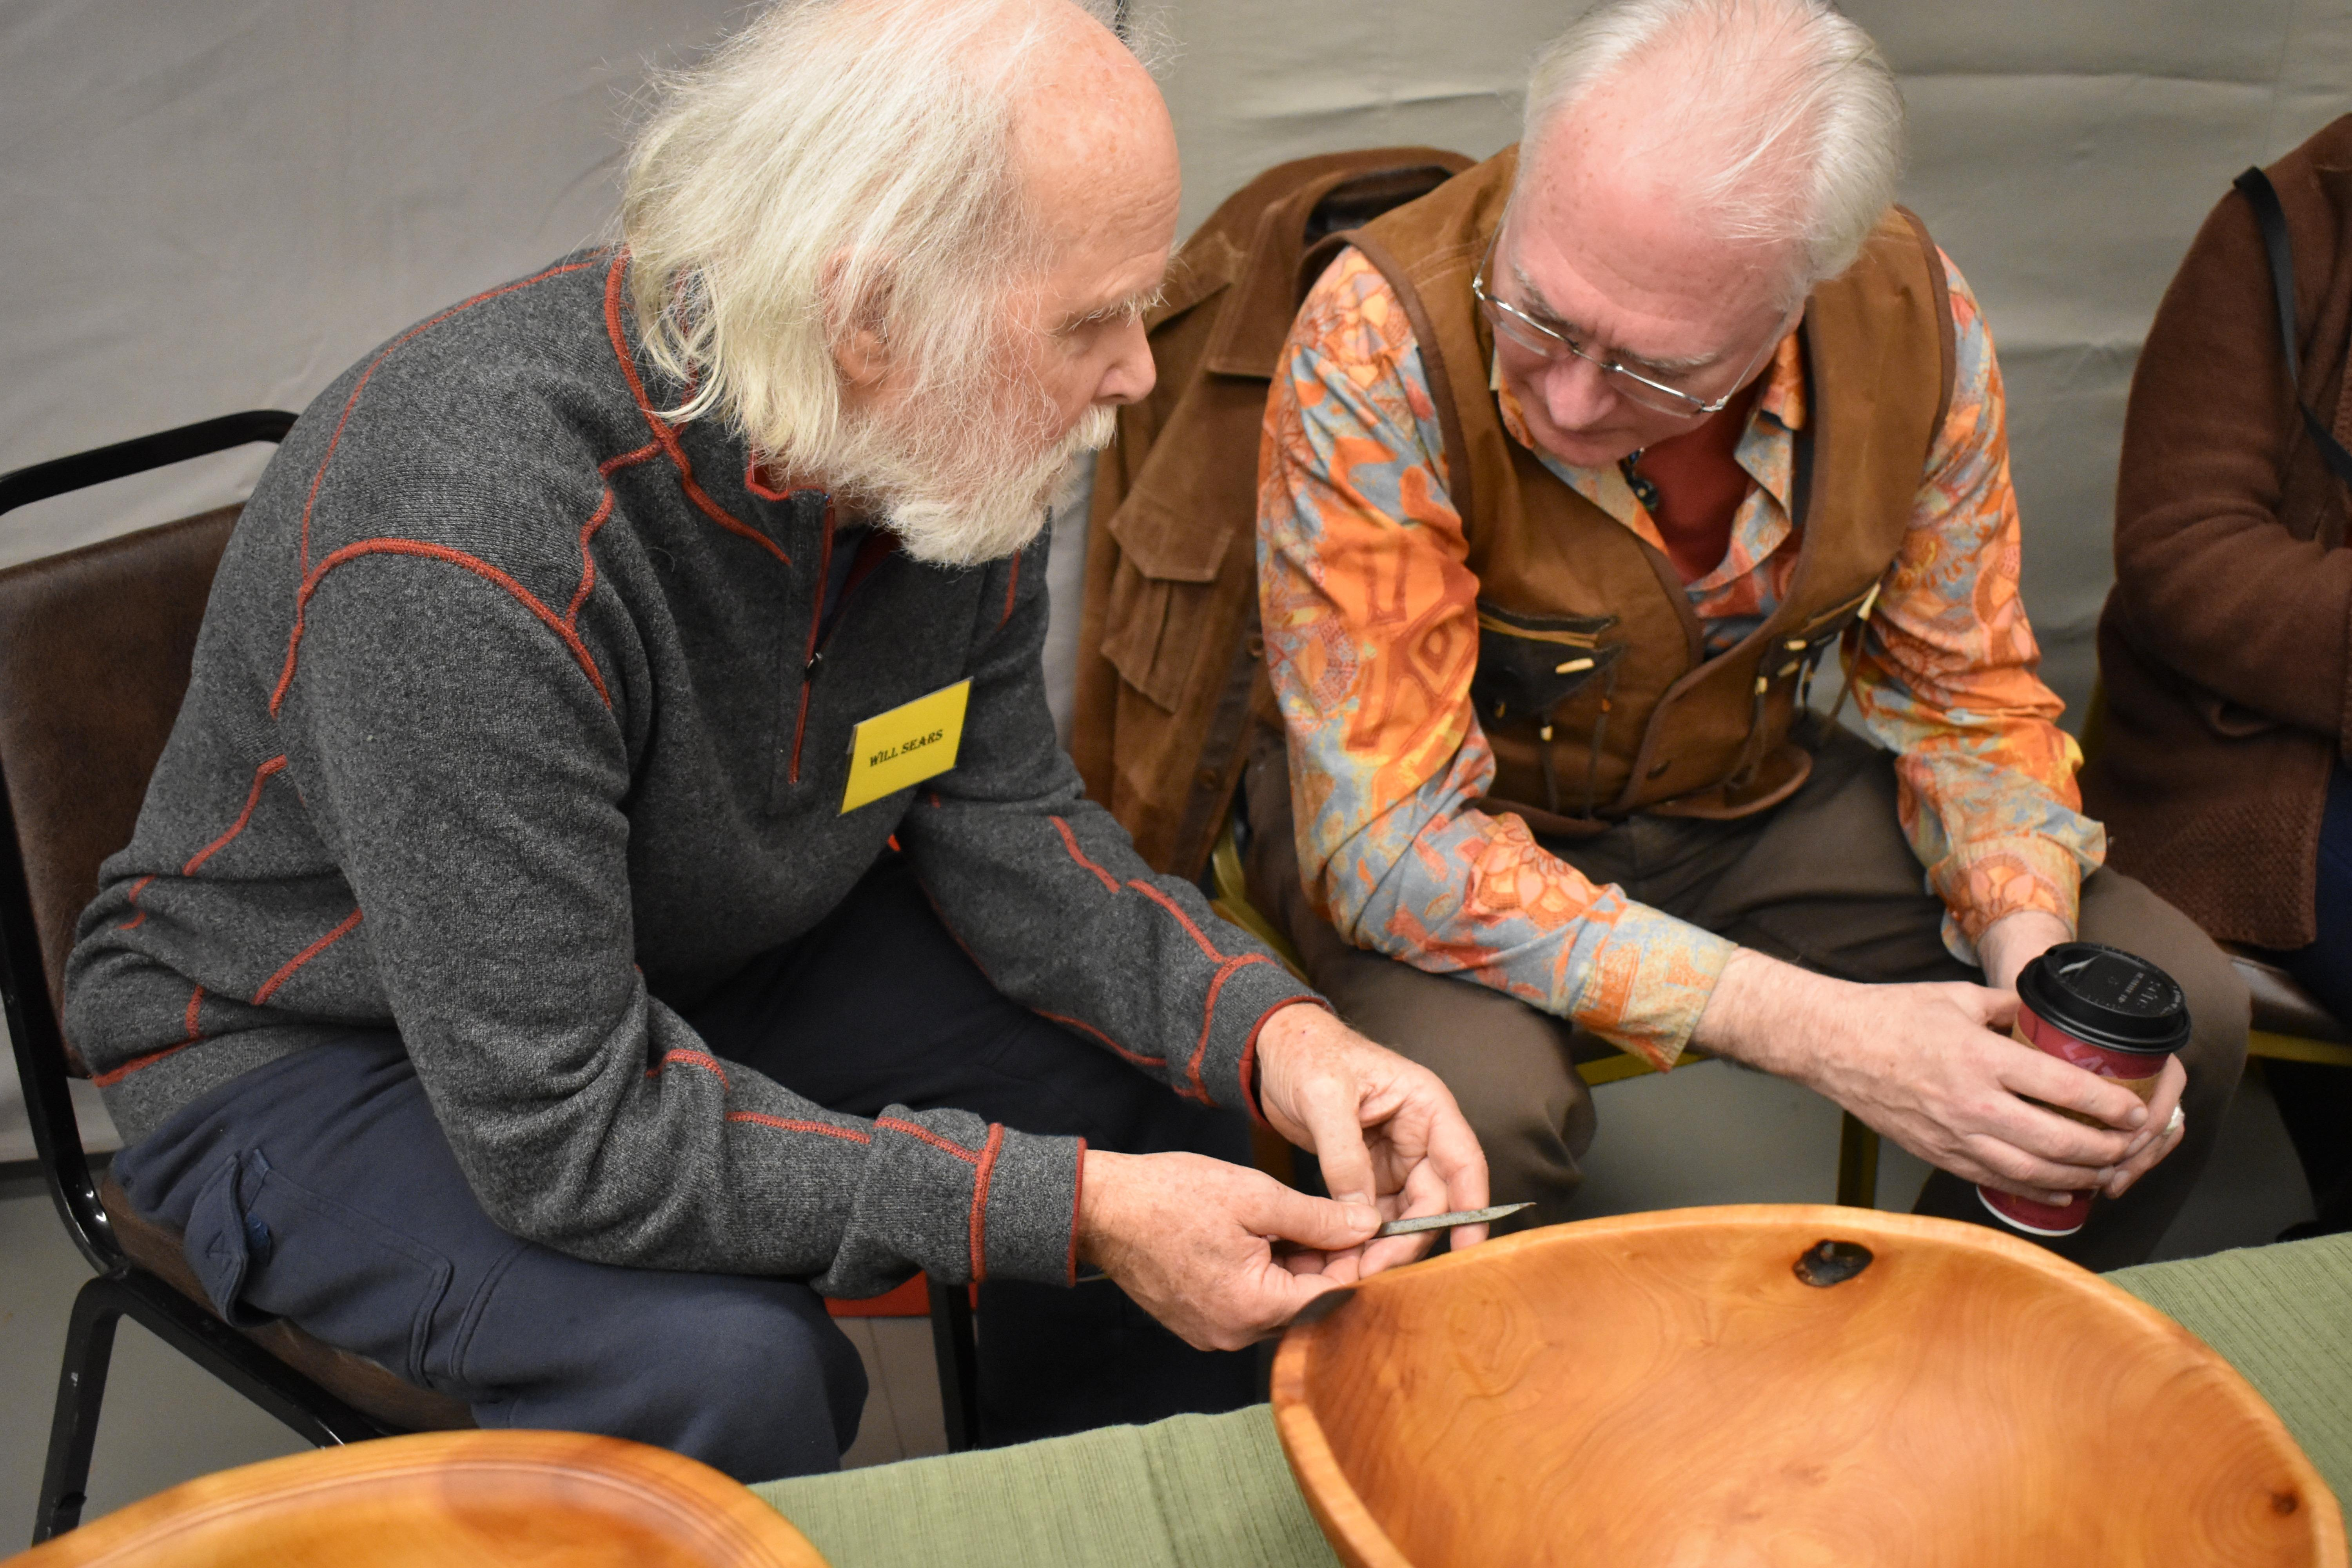 Woodworker Will Sears shows Ray Barry how a woodworker who crafts musical instruments would use a chisel. The chisel is a woodworking tool owned by Barry's grandfather, Gustav Theodore Mellquist. Photo by Maureen Flanagan Battistella